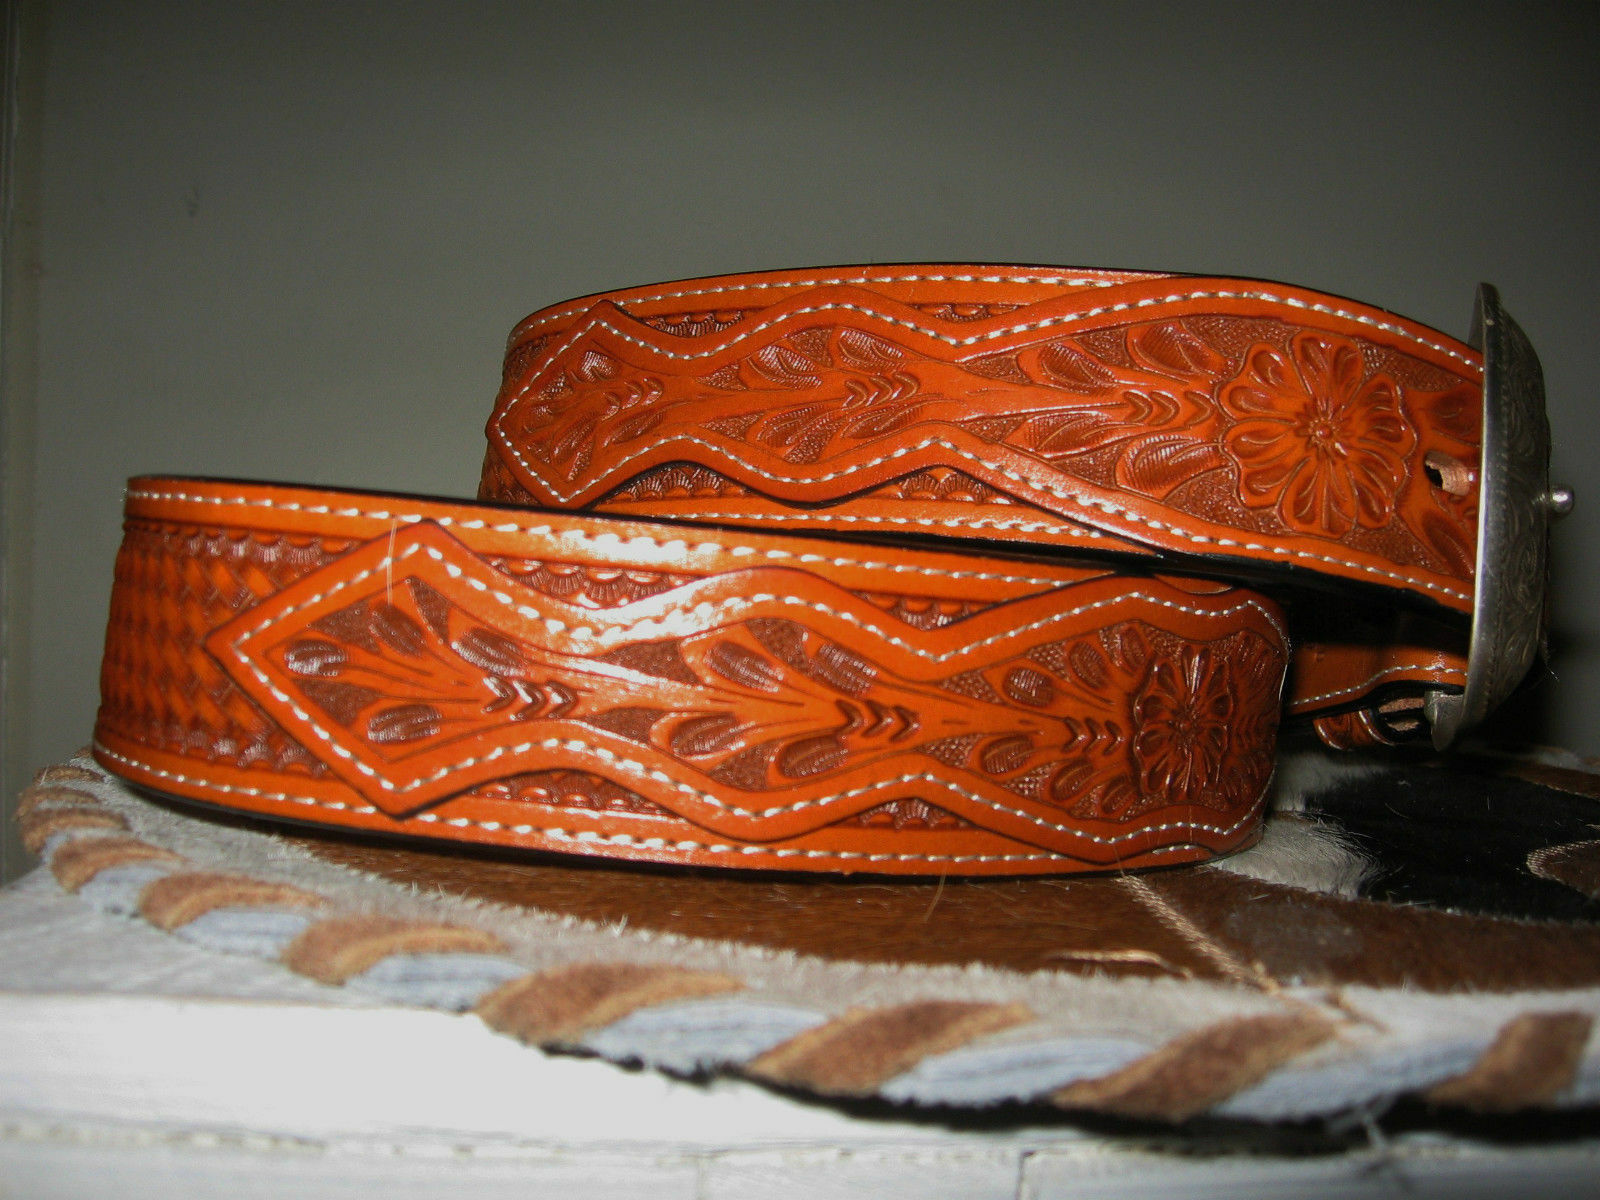 WESTERN  UNISEX TOOLED LEATHER BELT OVERLAY 1+ INCH FLORAL BASKETWEAVE SIZE 46  100% genuine counter guarantee